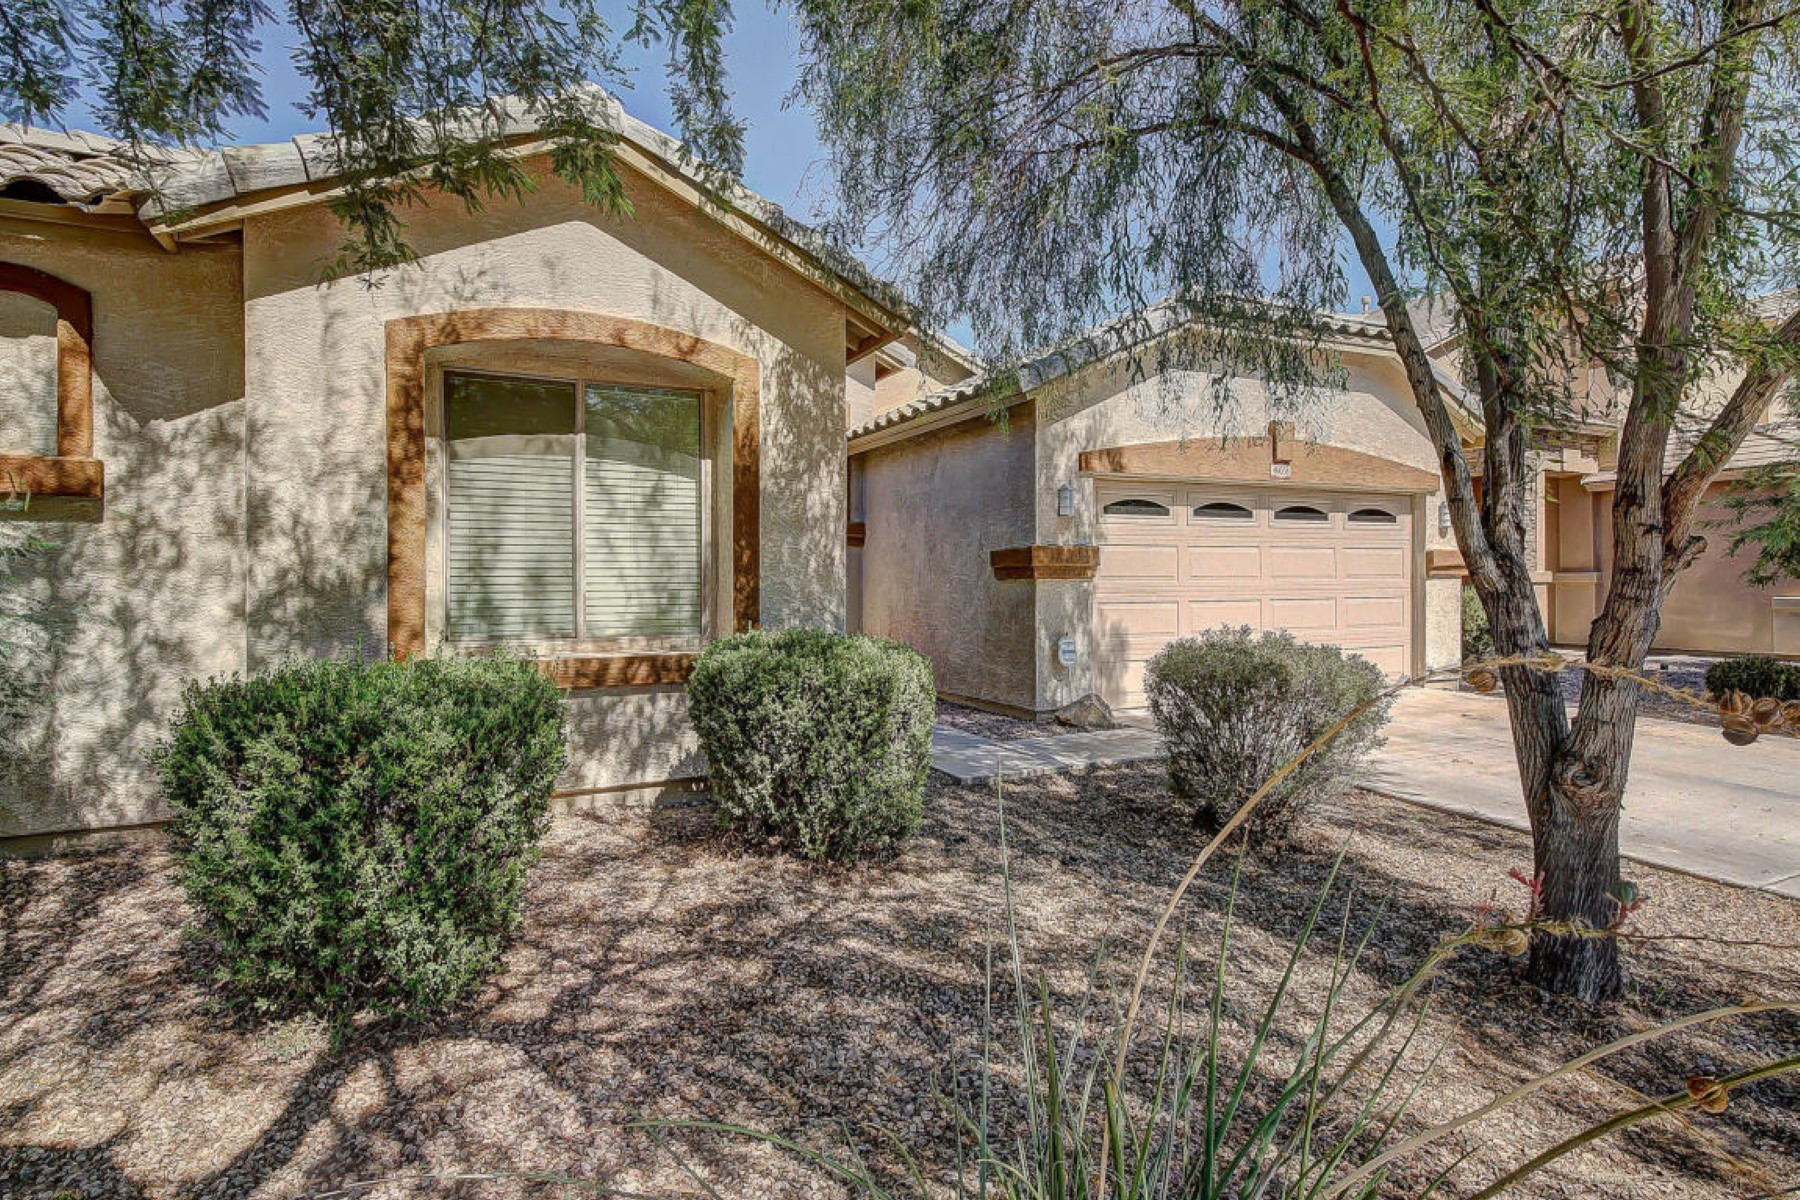 Single Family Home for Sale at Fantastic, spacious single story home in The Meadows 46058 W Rainbow Dr Maricopa, Arizona 85139 United States